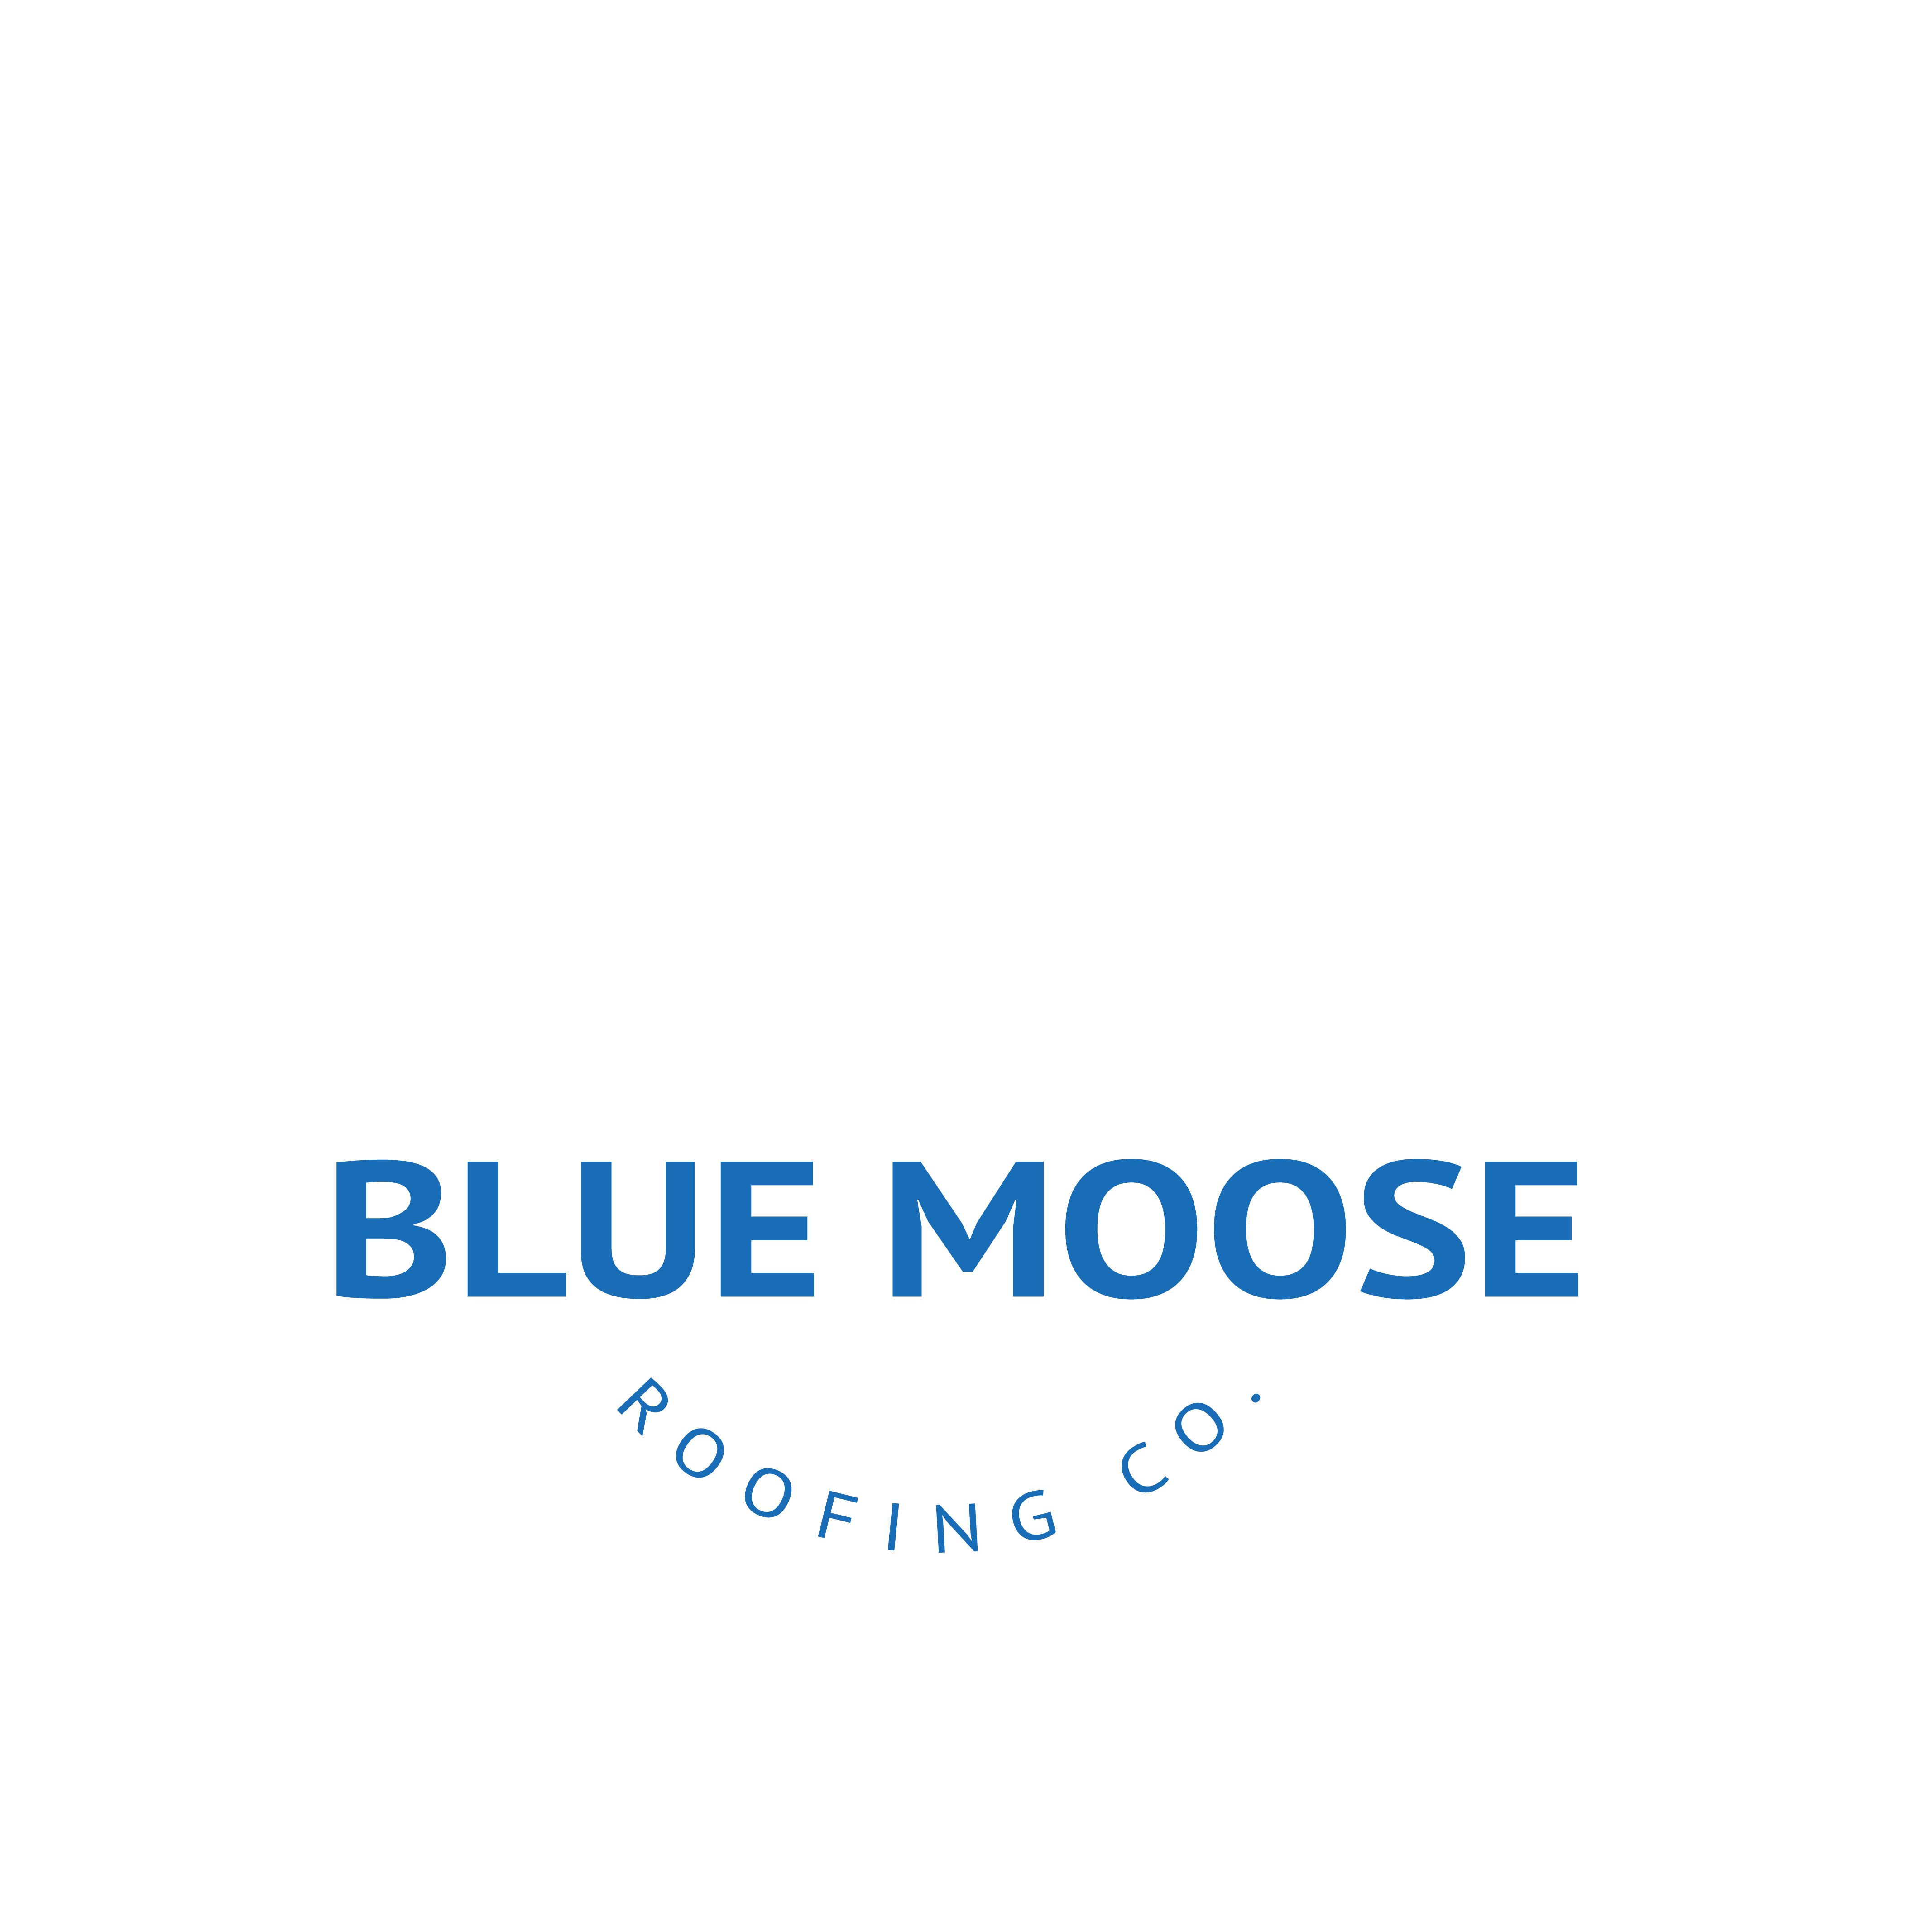 Blue Moose Roofing Company